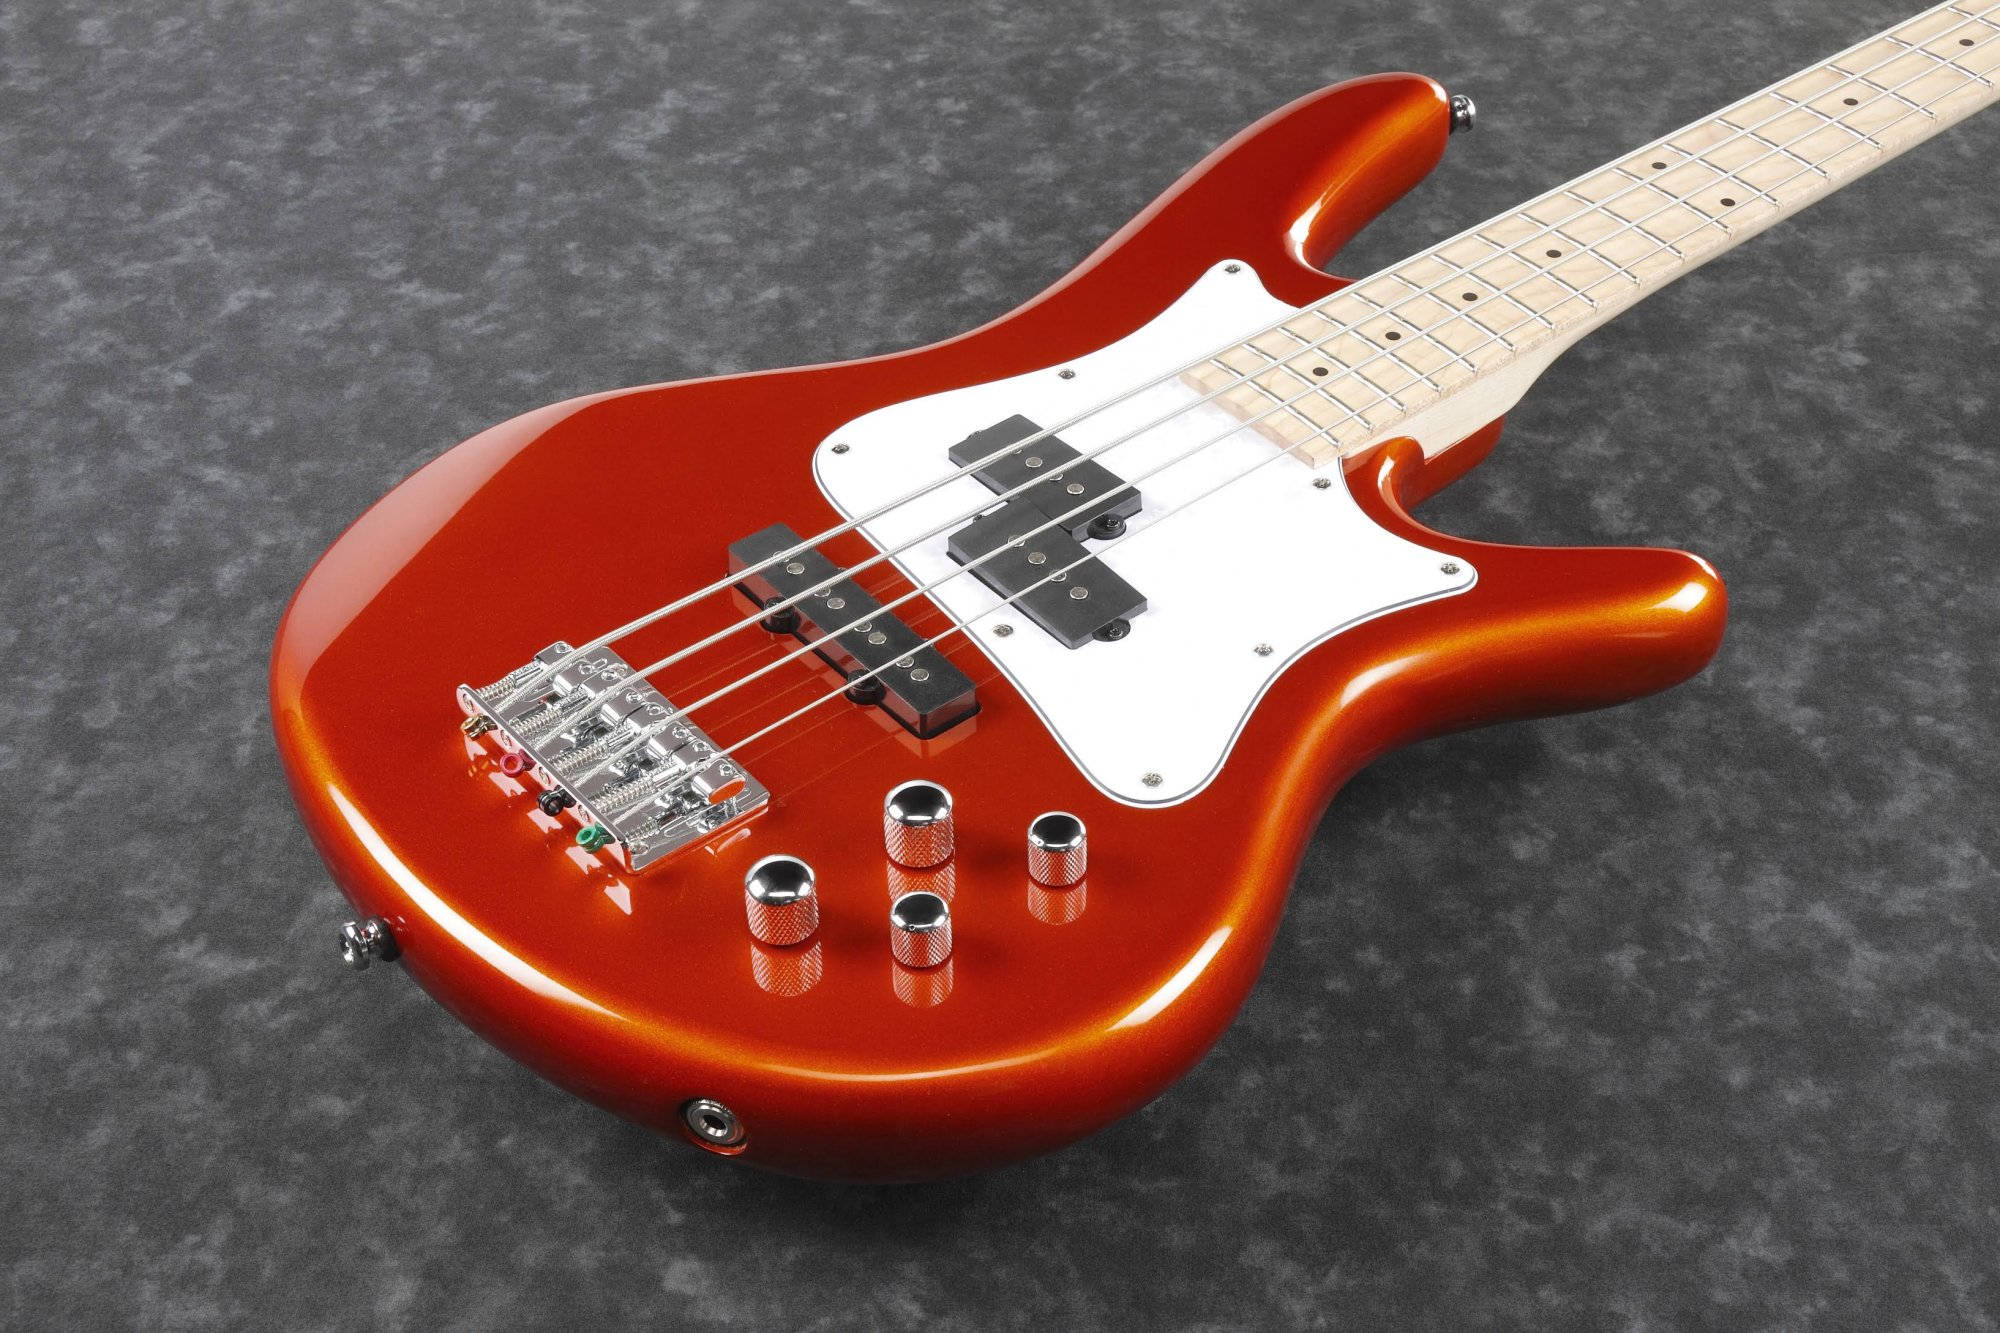 Ibanez SRMD200-ROM  SR Mezzo Bass   Roadster Orange Metallic